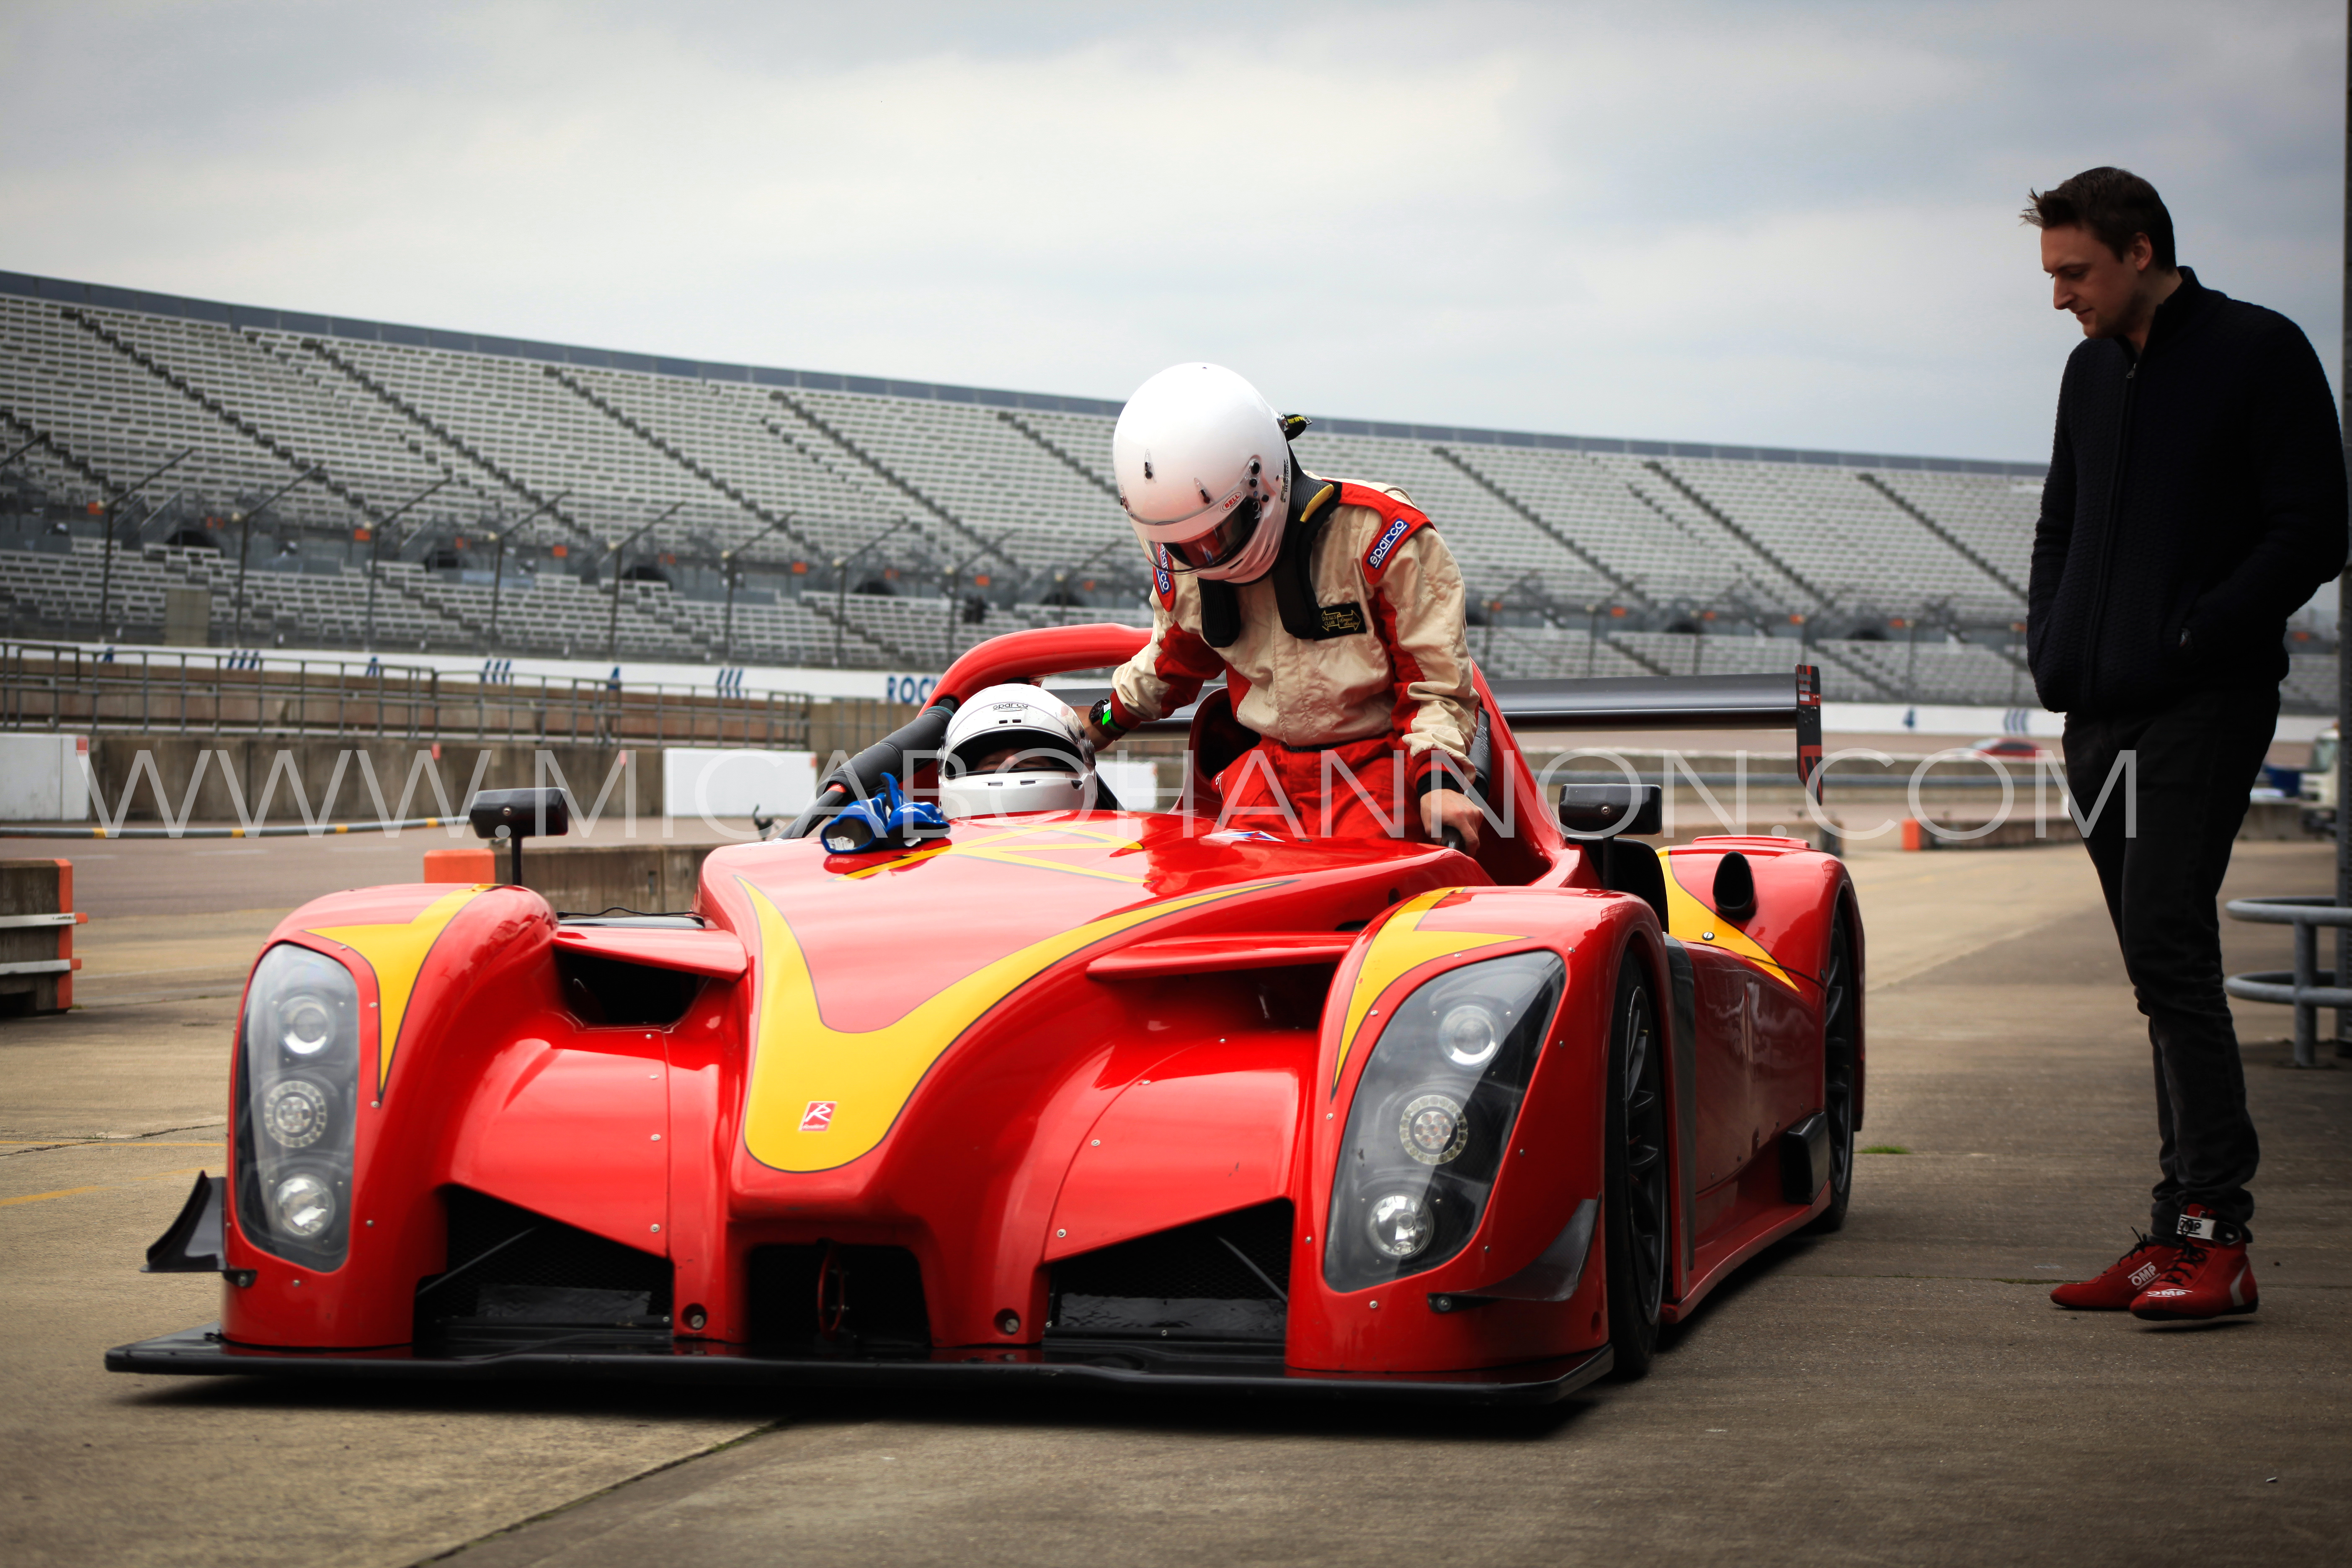 racing driver getting into radical